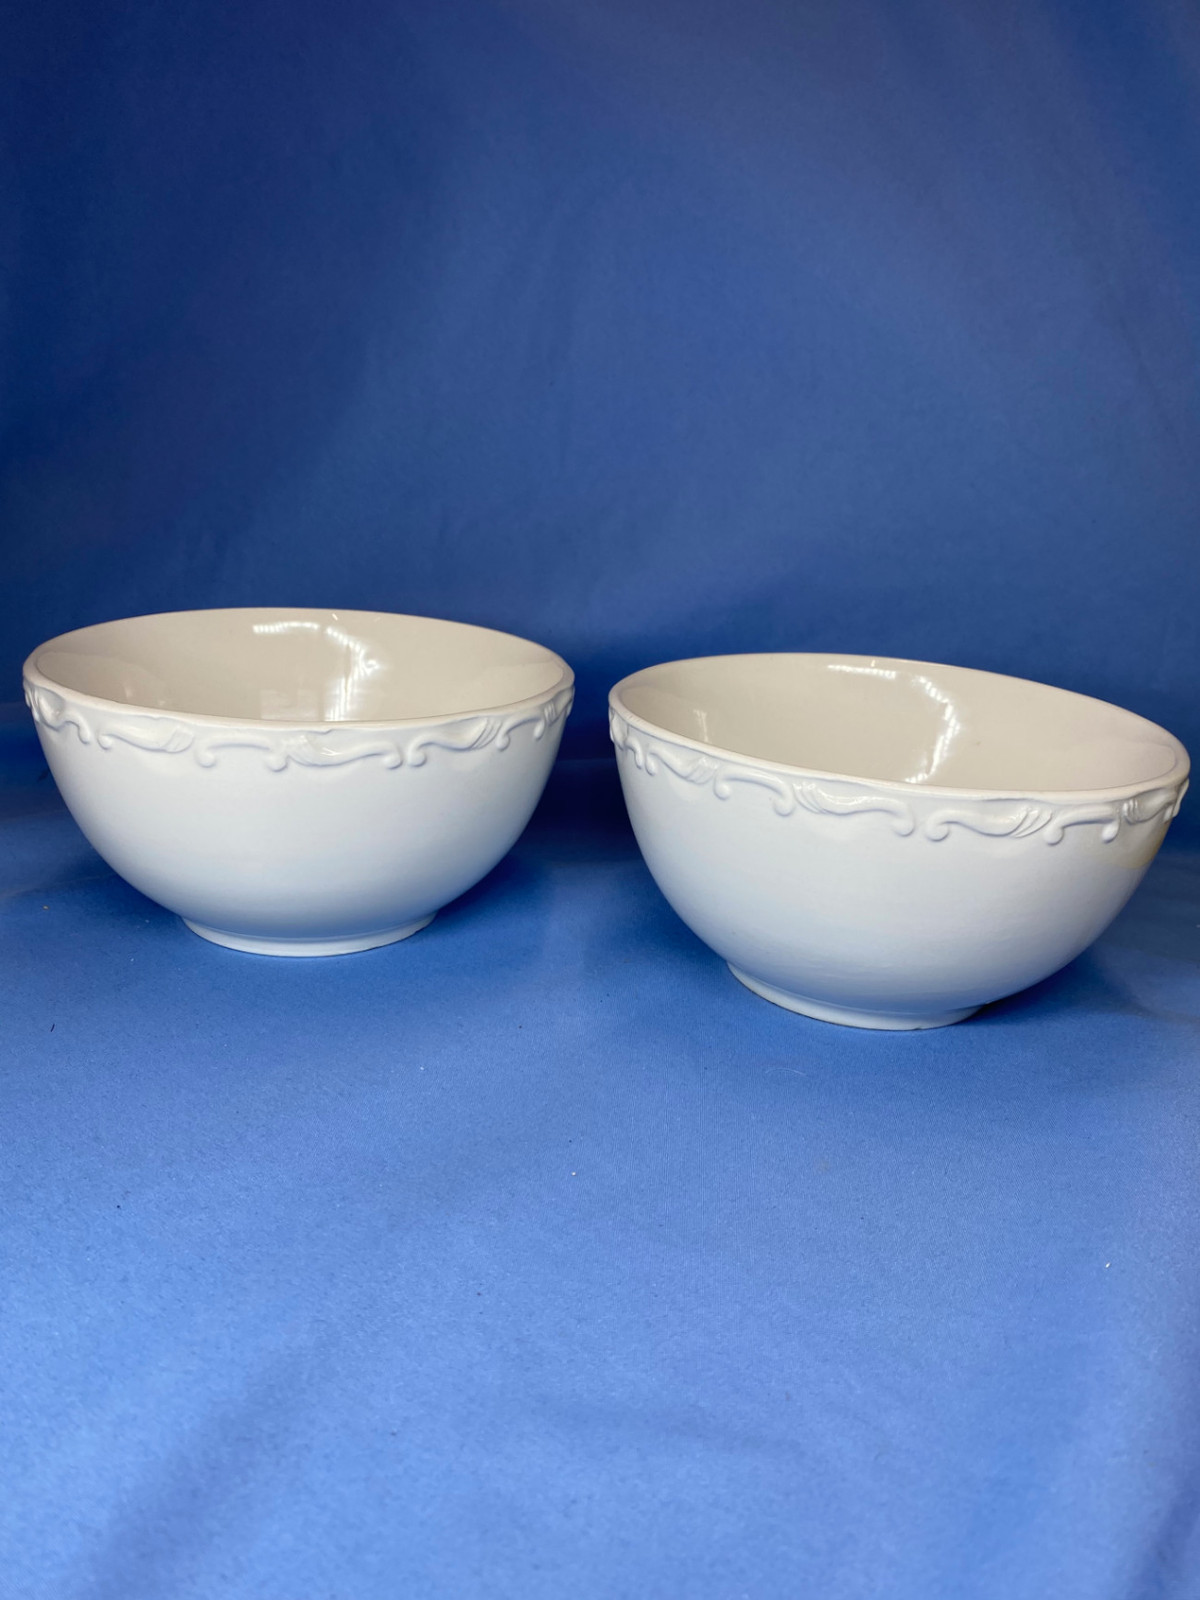 Primary image for Vintage Set Of 2 Gibson Everyday White All Purpose Soup Cereal Bowls 6 Inch